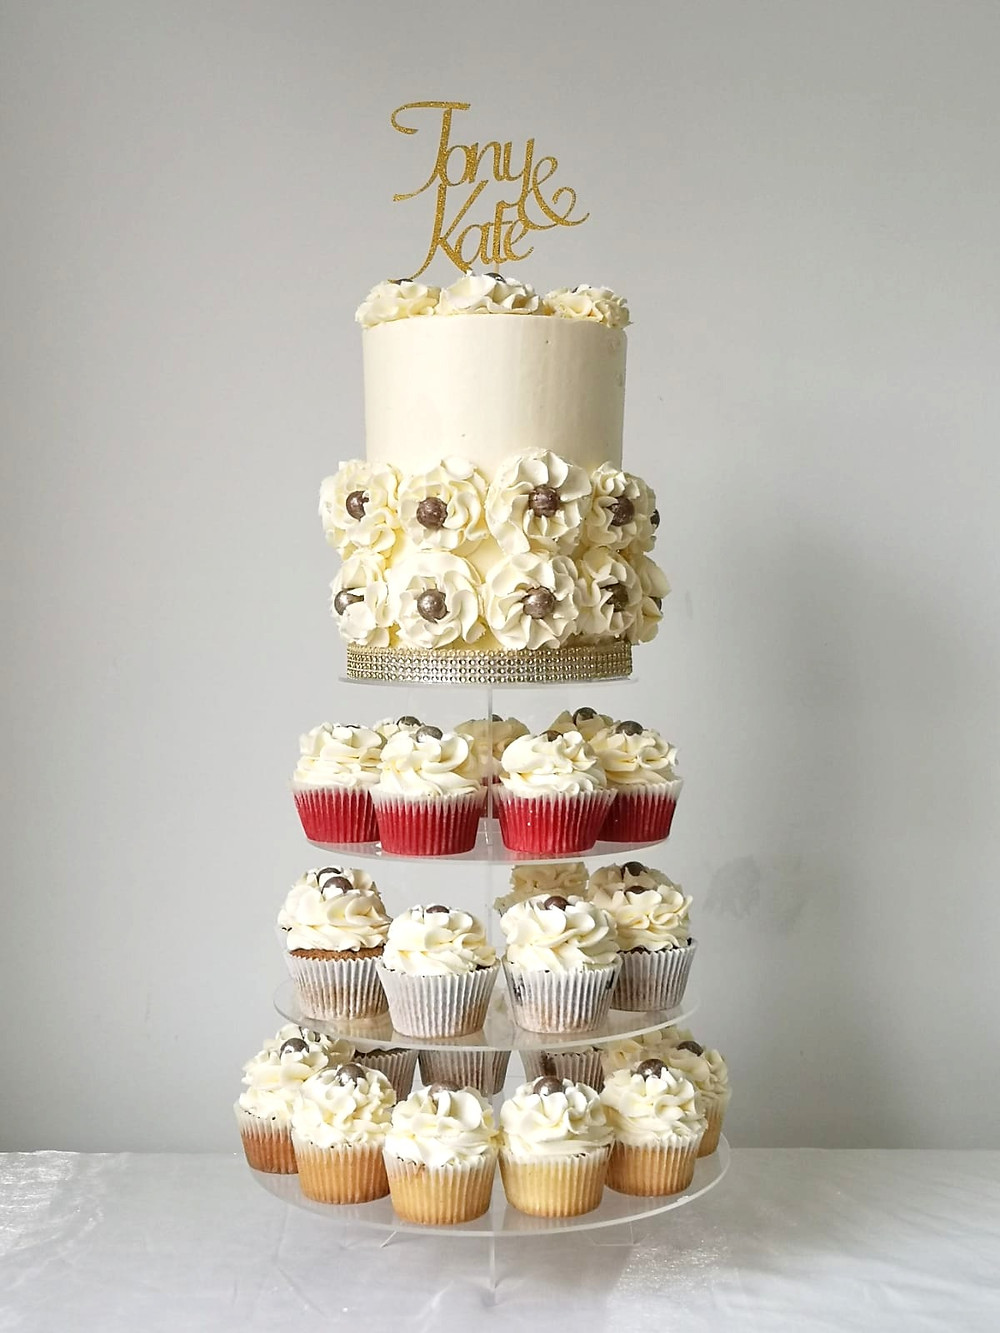 Wedding Cupcake Tower with a Small Cake